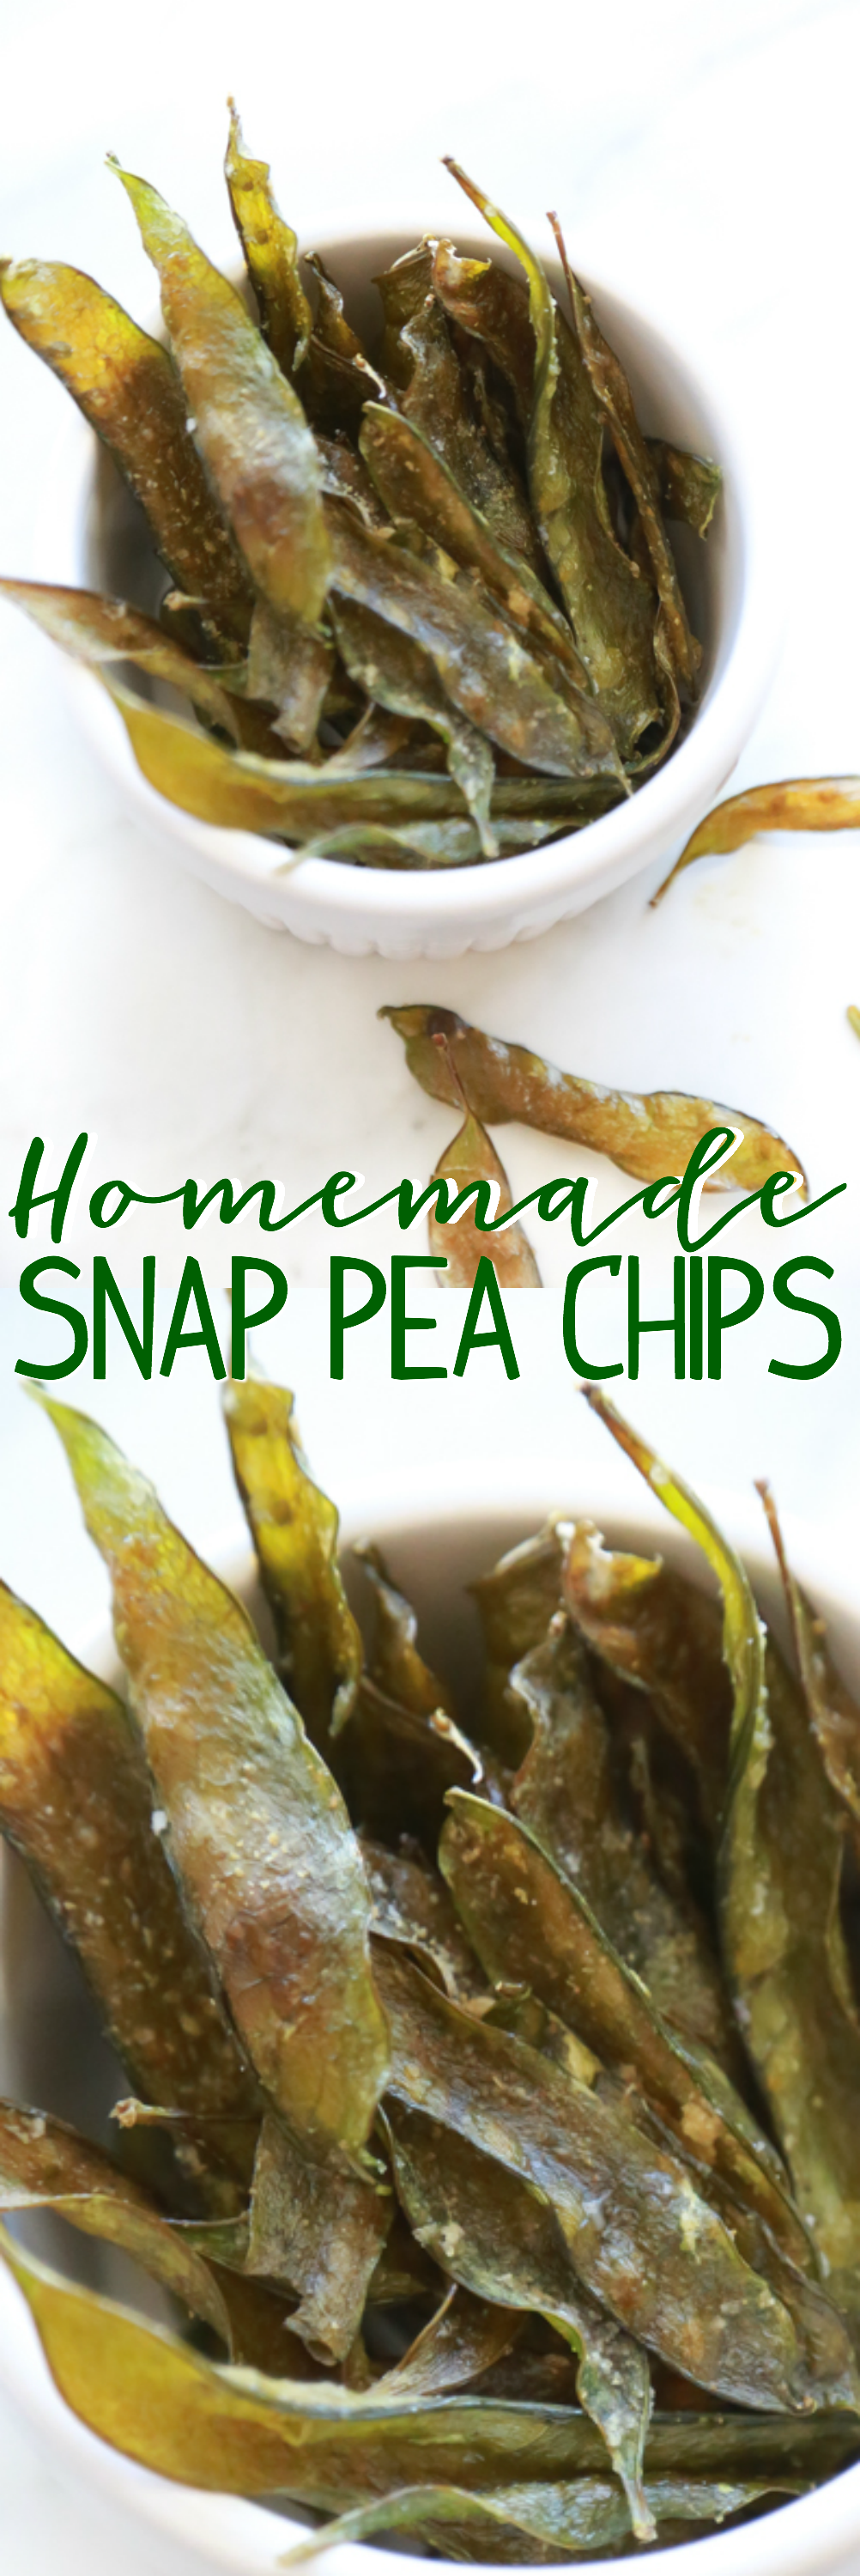 snap pea chips recipe